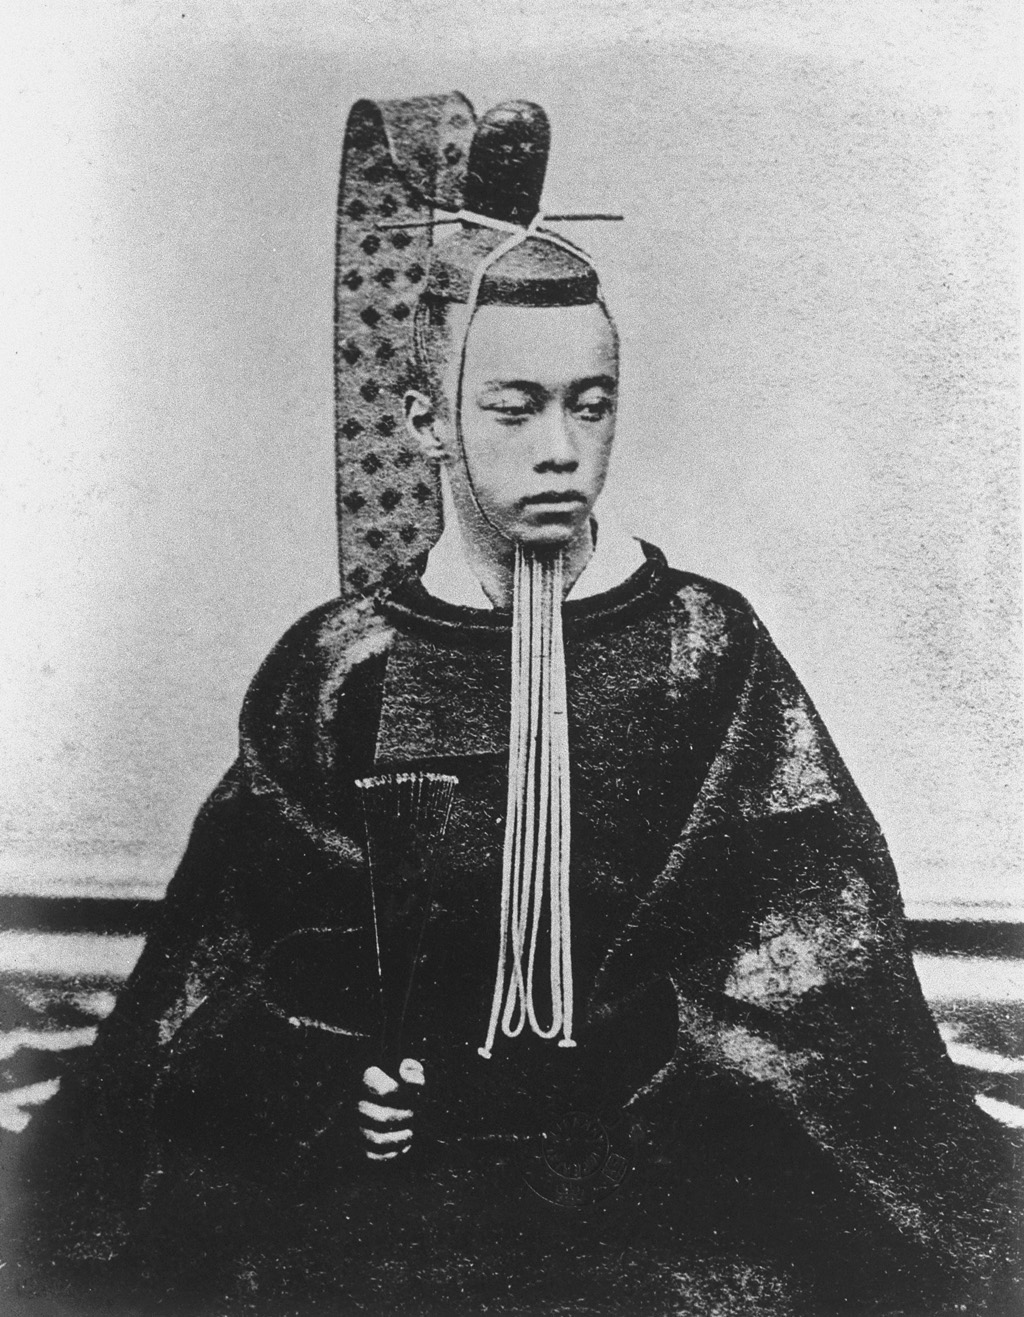 tokugawa shogunate The tokugawa clan (徳川氏) is one of the few samurai families from ancient times to remain active in japan today in the samurai warriors franchise, the clan usually is represented by the color blue.